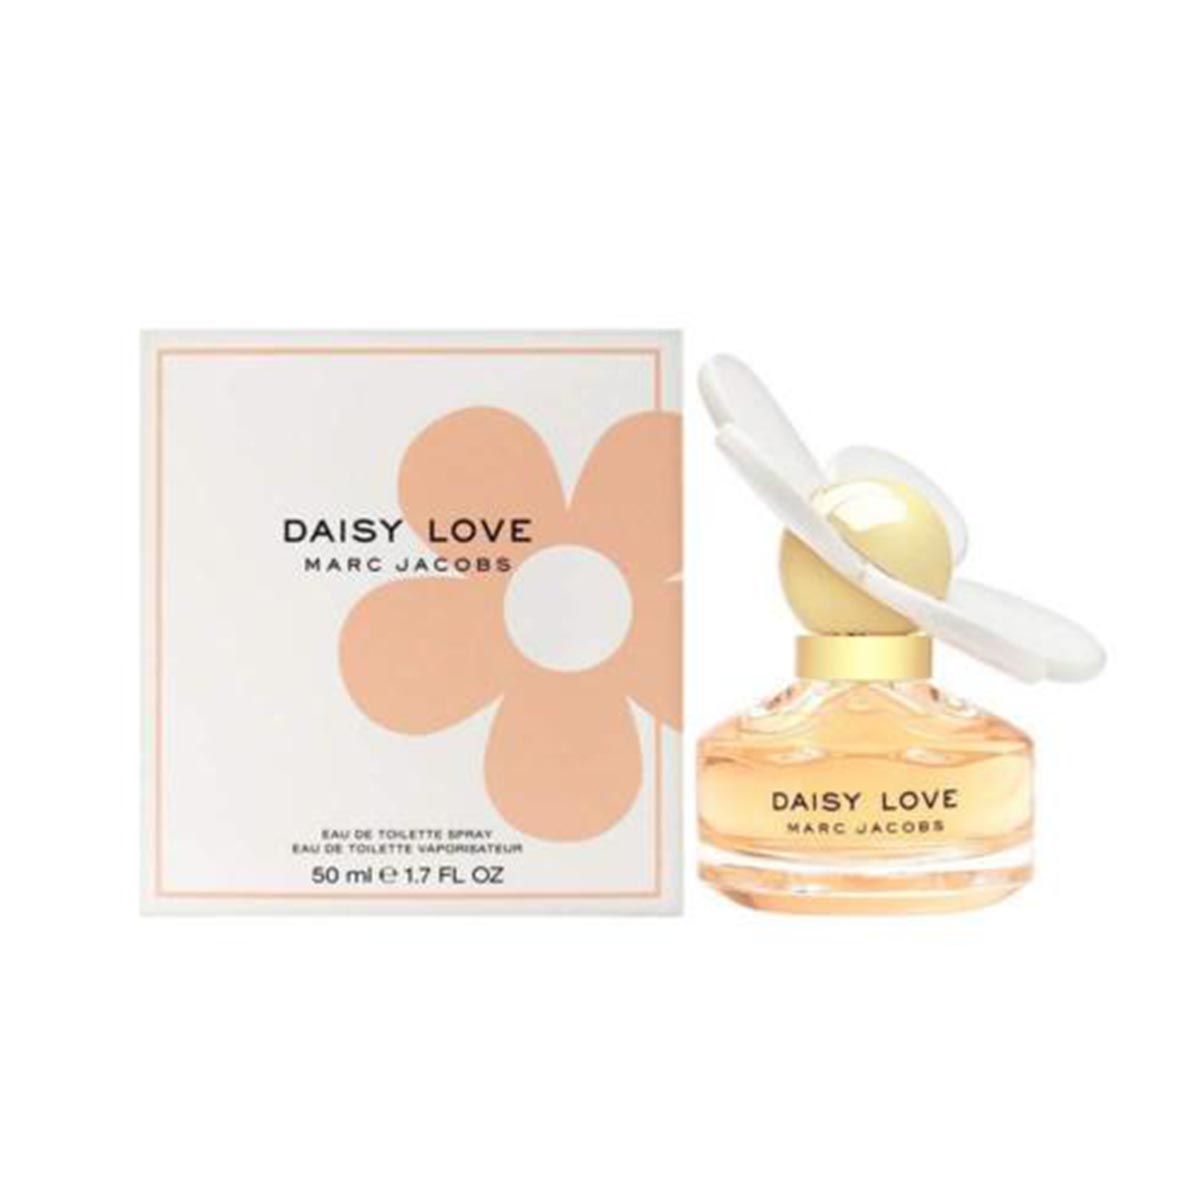 Marc jacobs daisy love eau de toilette 50ml vaporizador